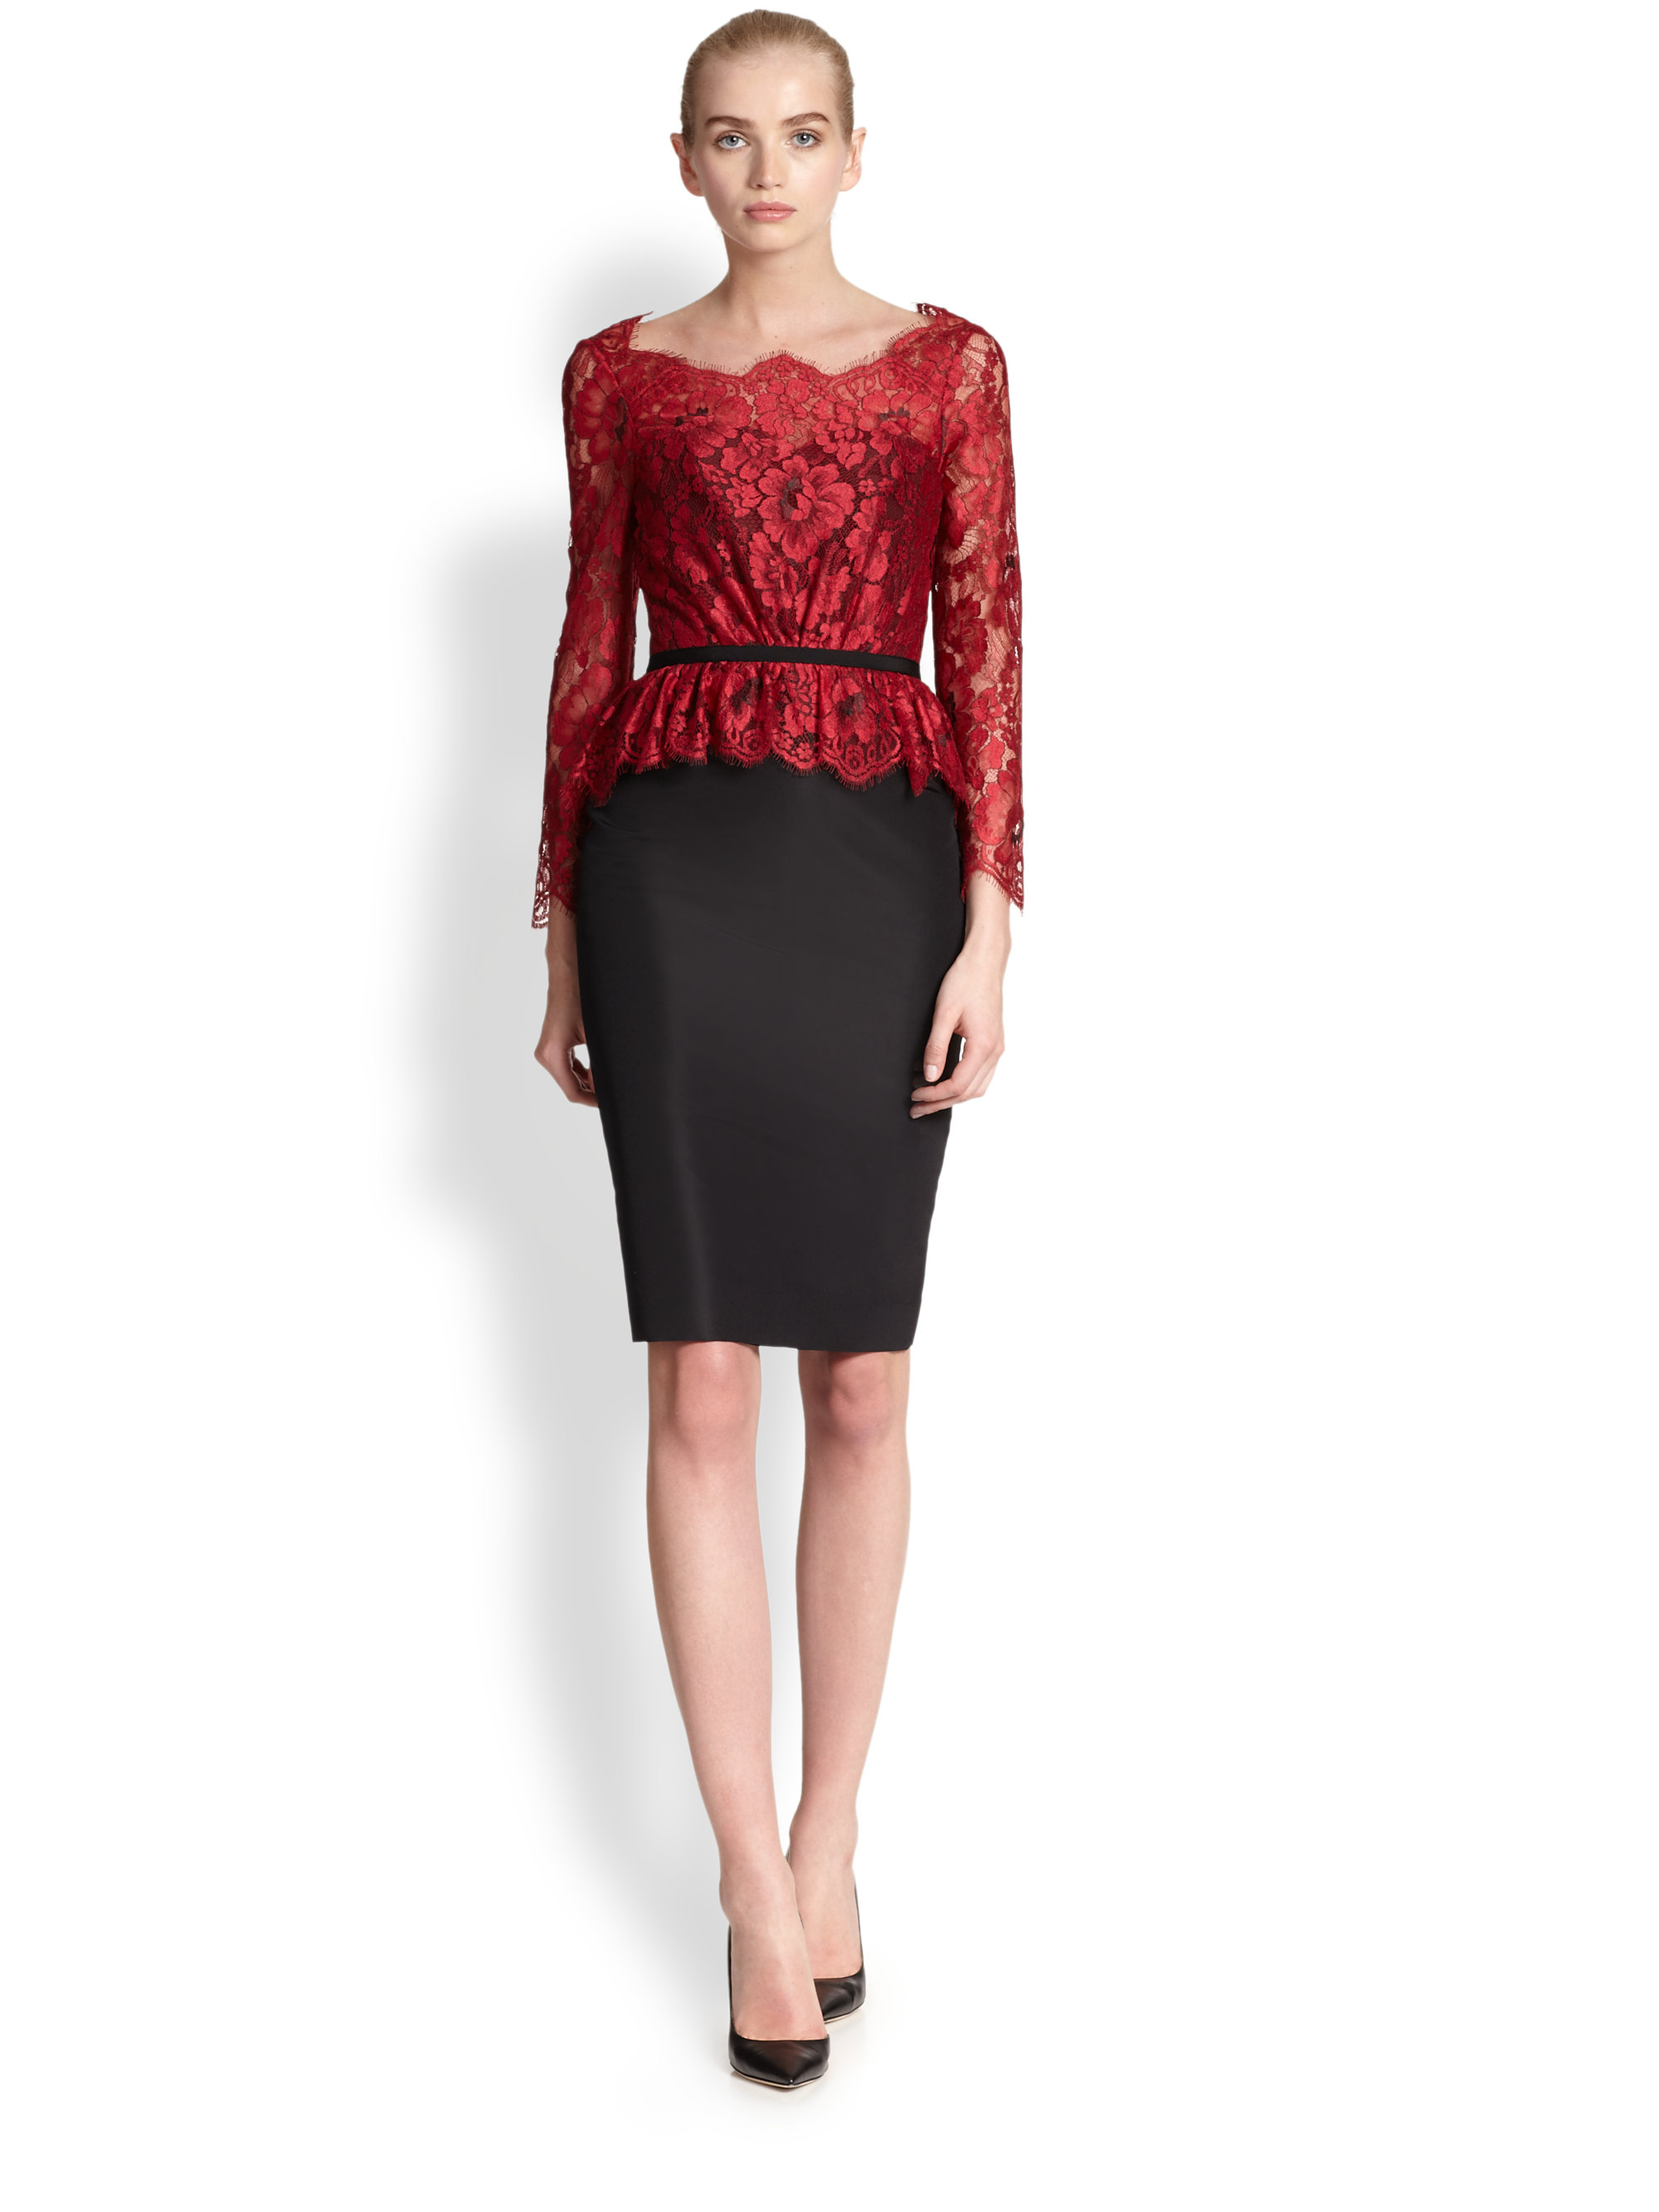 Lyst - Carolina Herrera Floral Lace Peplum Cocktail Dress in Pink